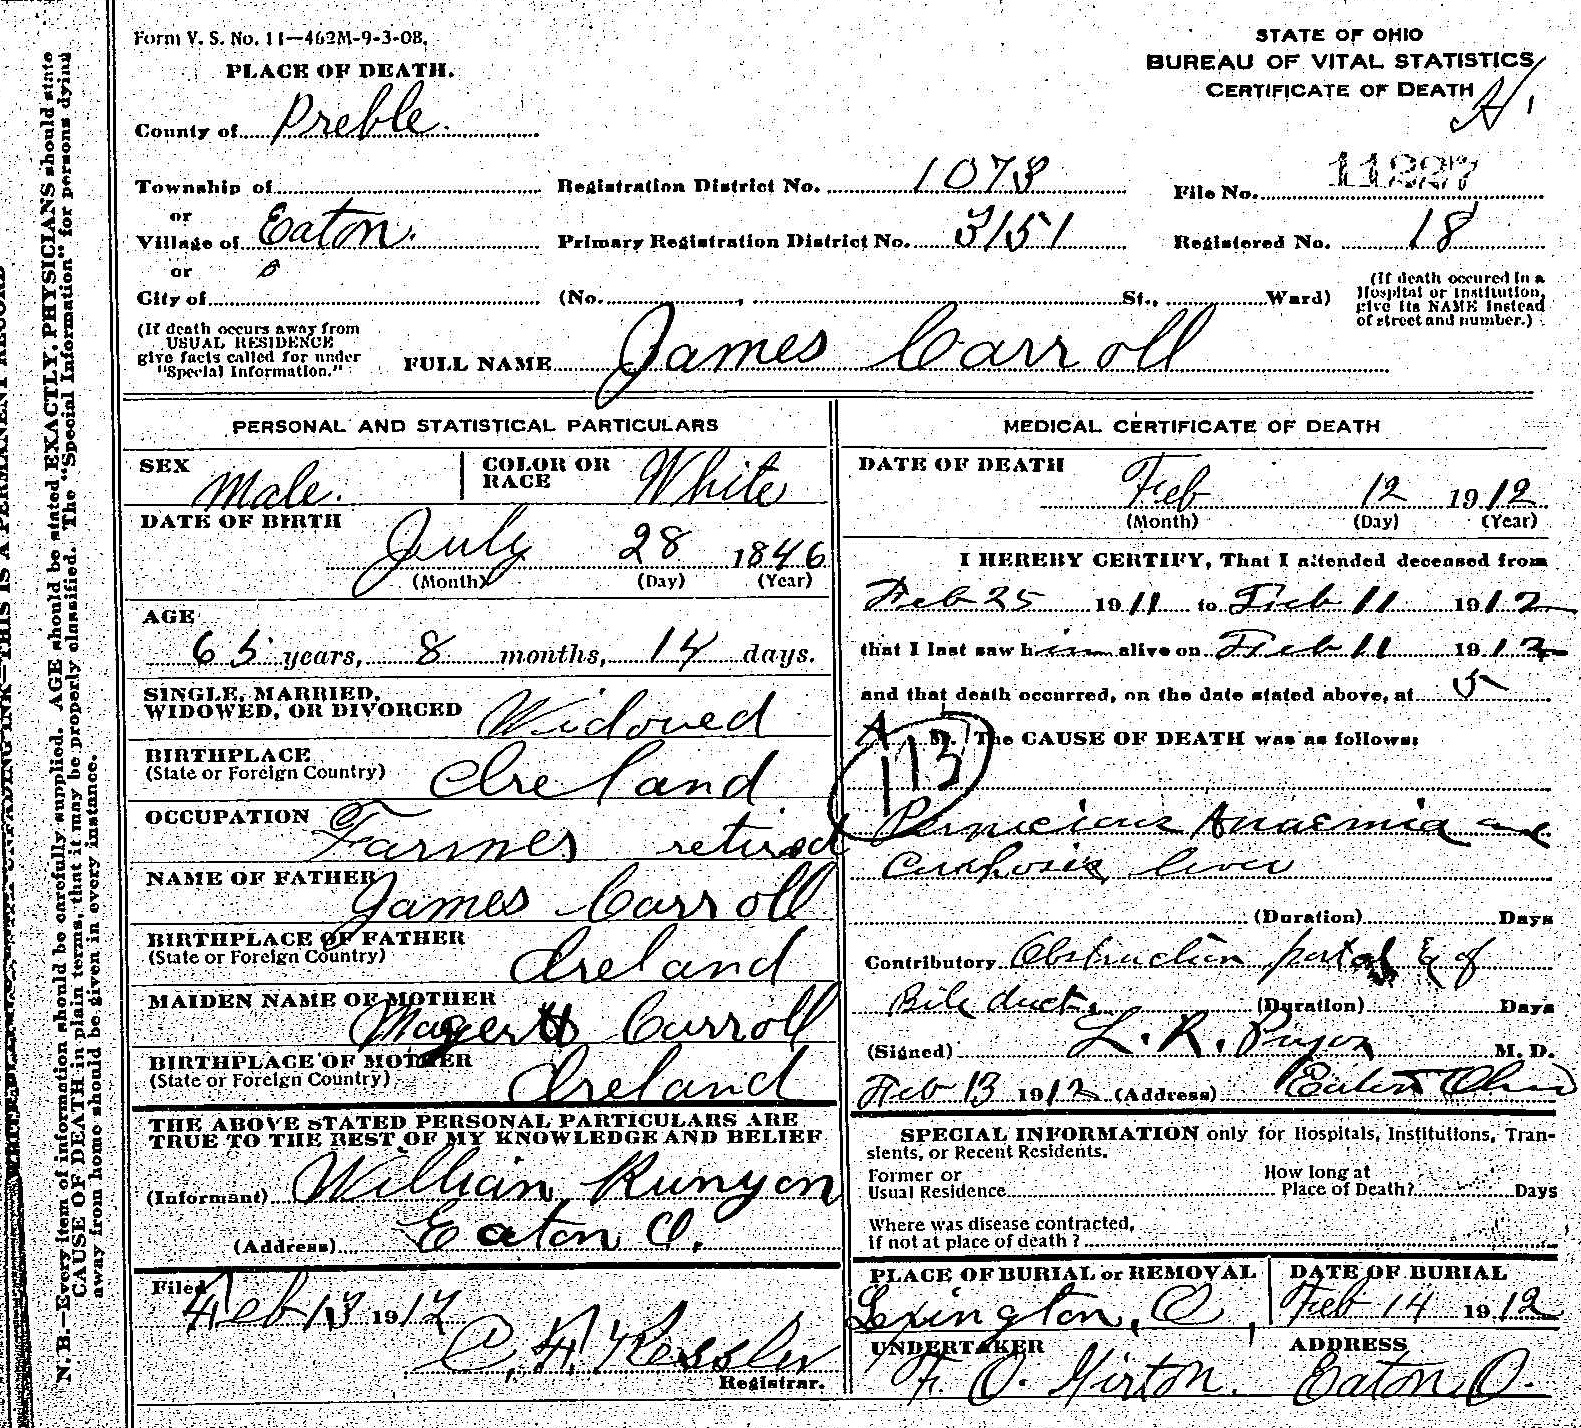 James carroll 1846 1912 find a grave memorial death certificate of james carroll showing he was born in ireland occupation birthdeath dates places etc from familysearch public records xflitez Choice Image